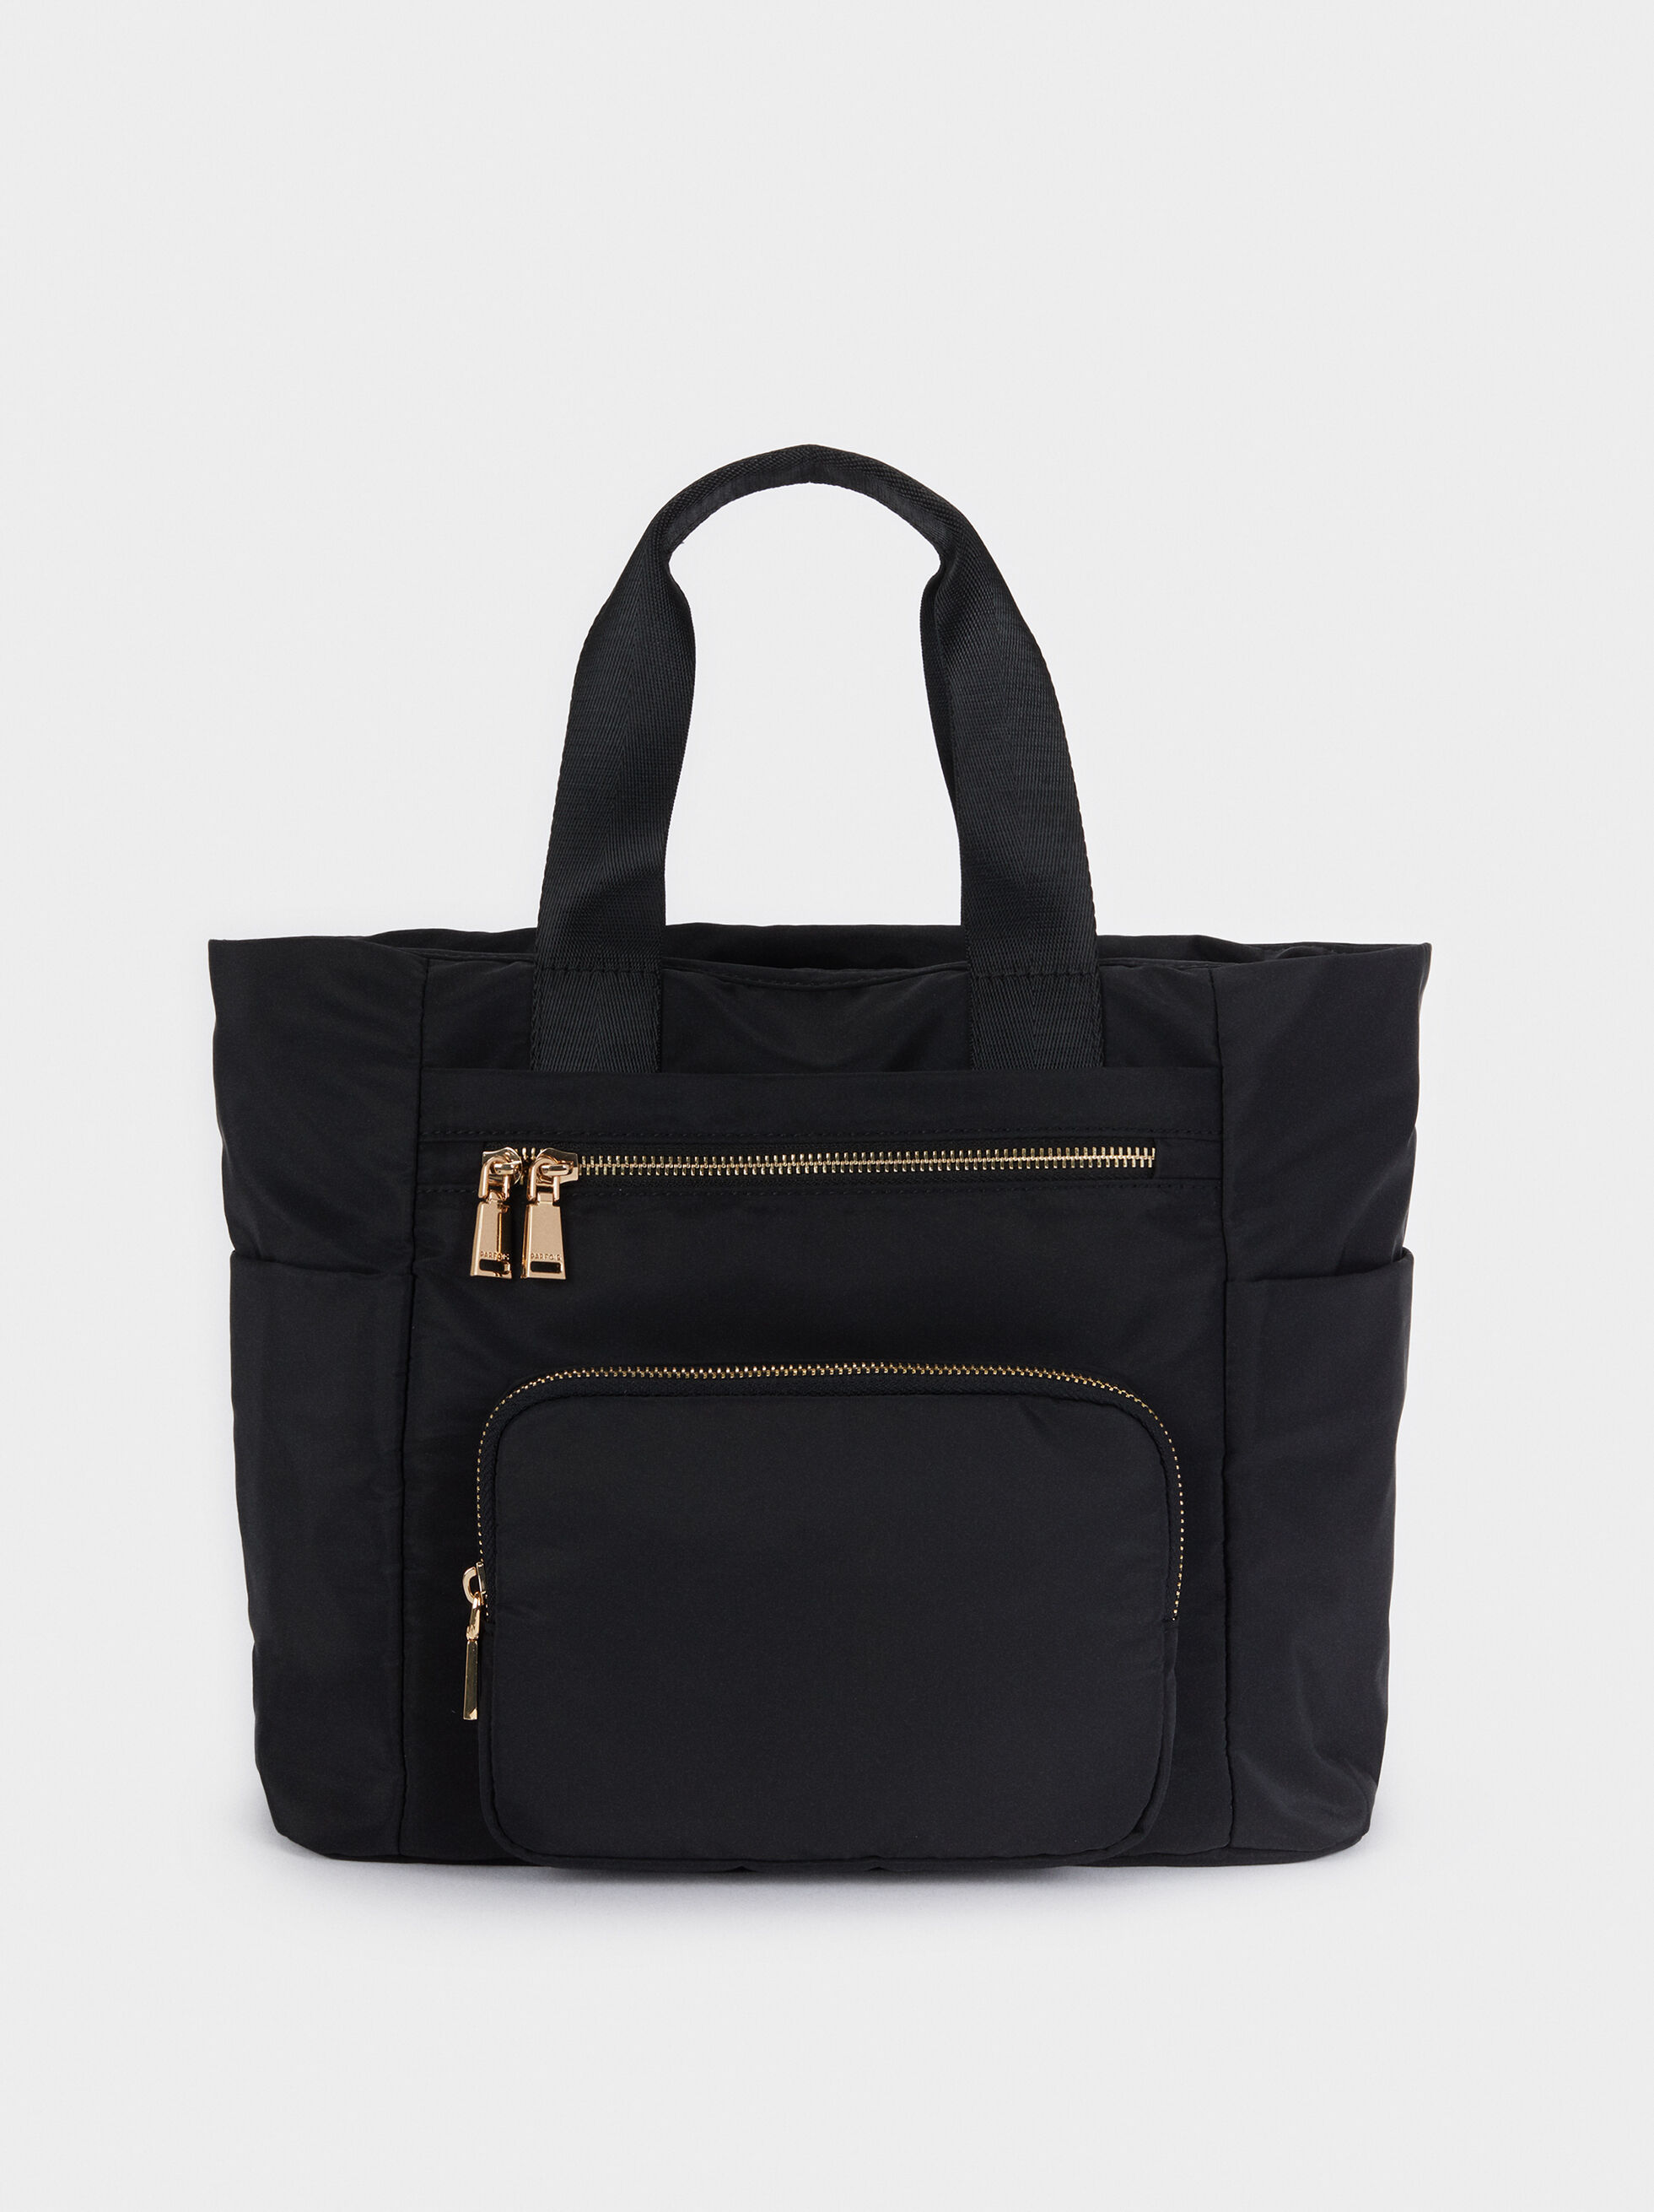 Borsa Shopper In Nylon Con Tasca Esterna, , hi-res